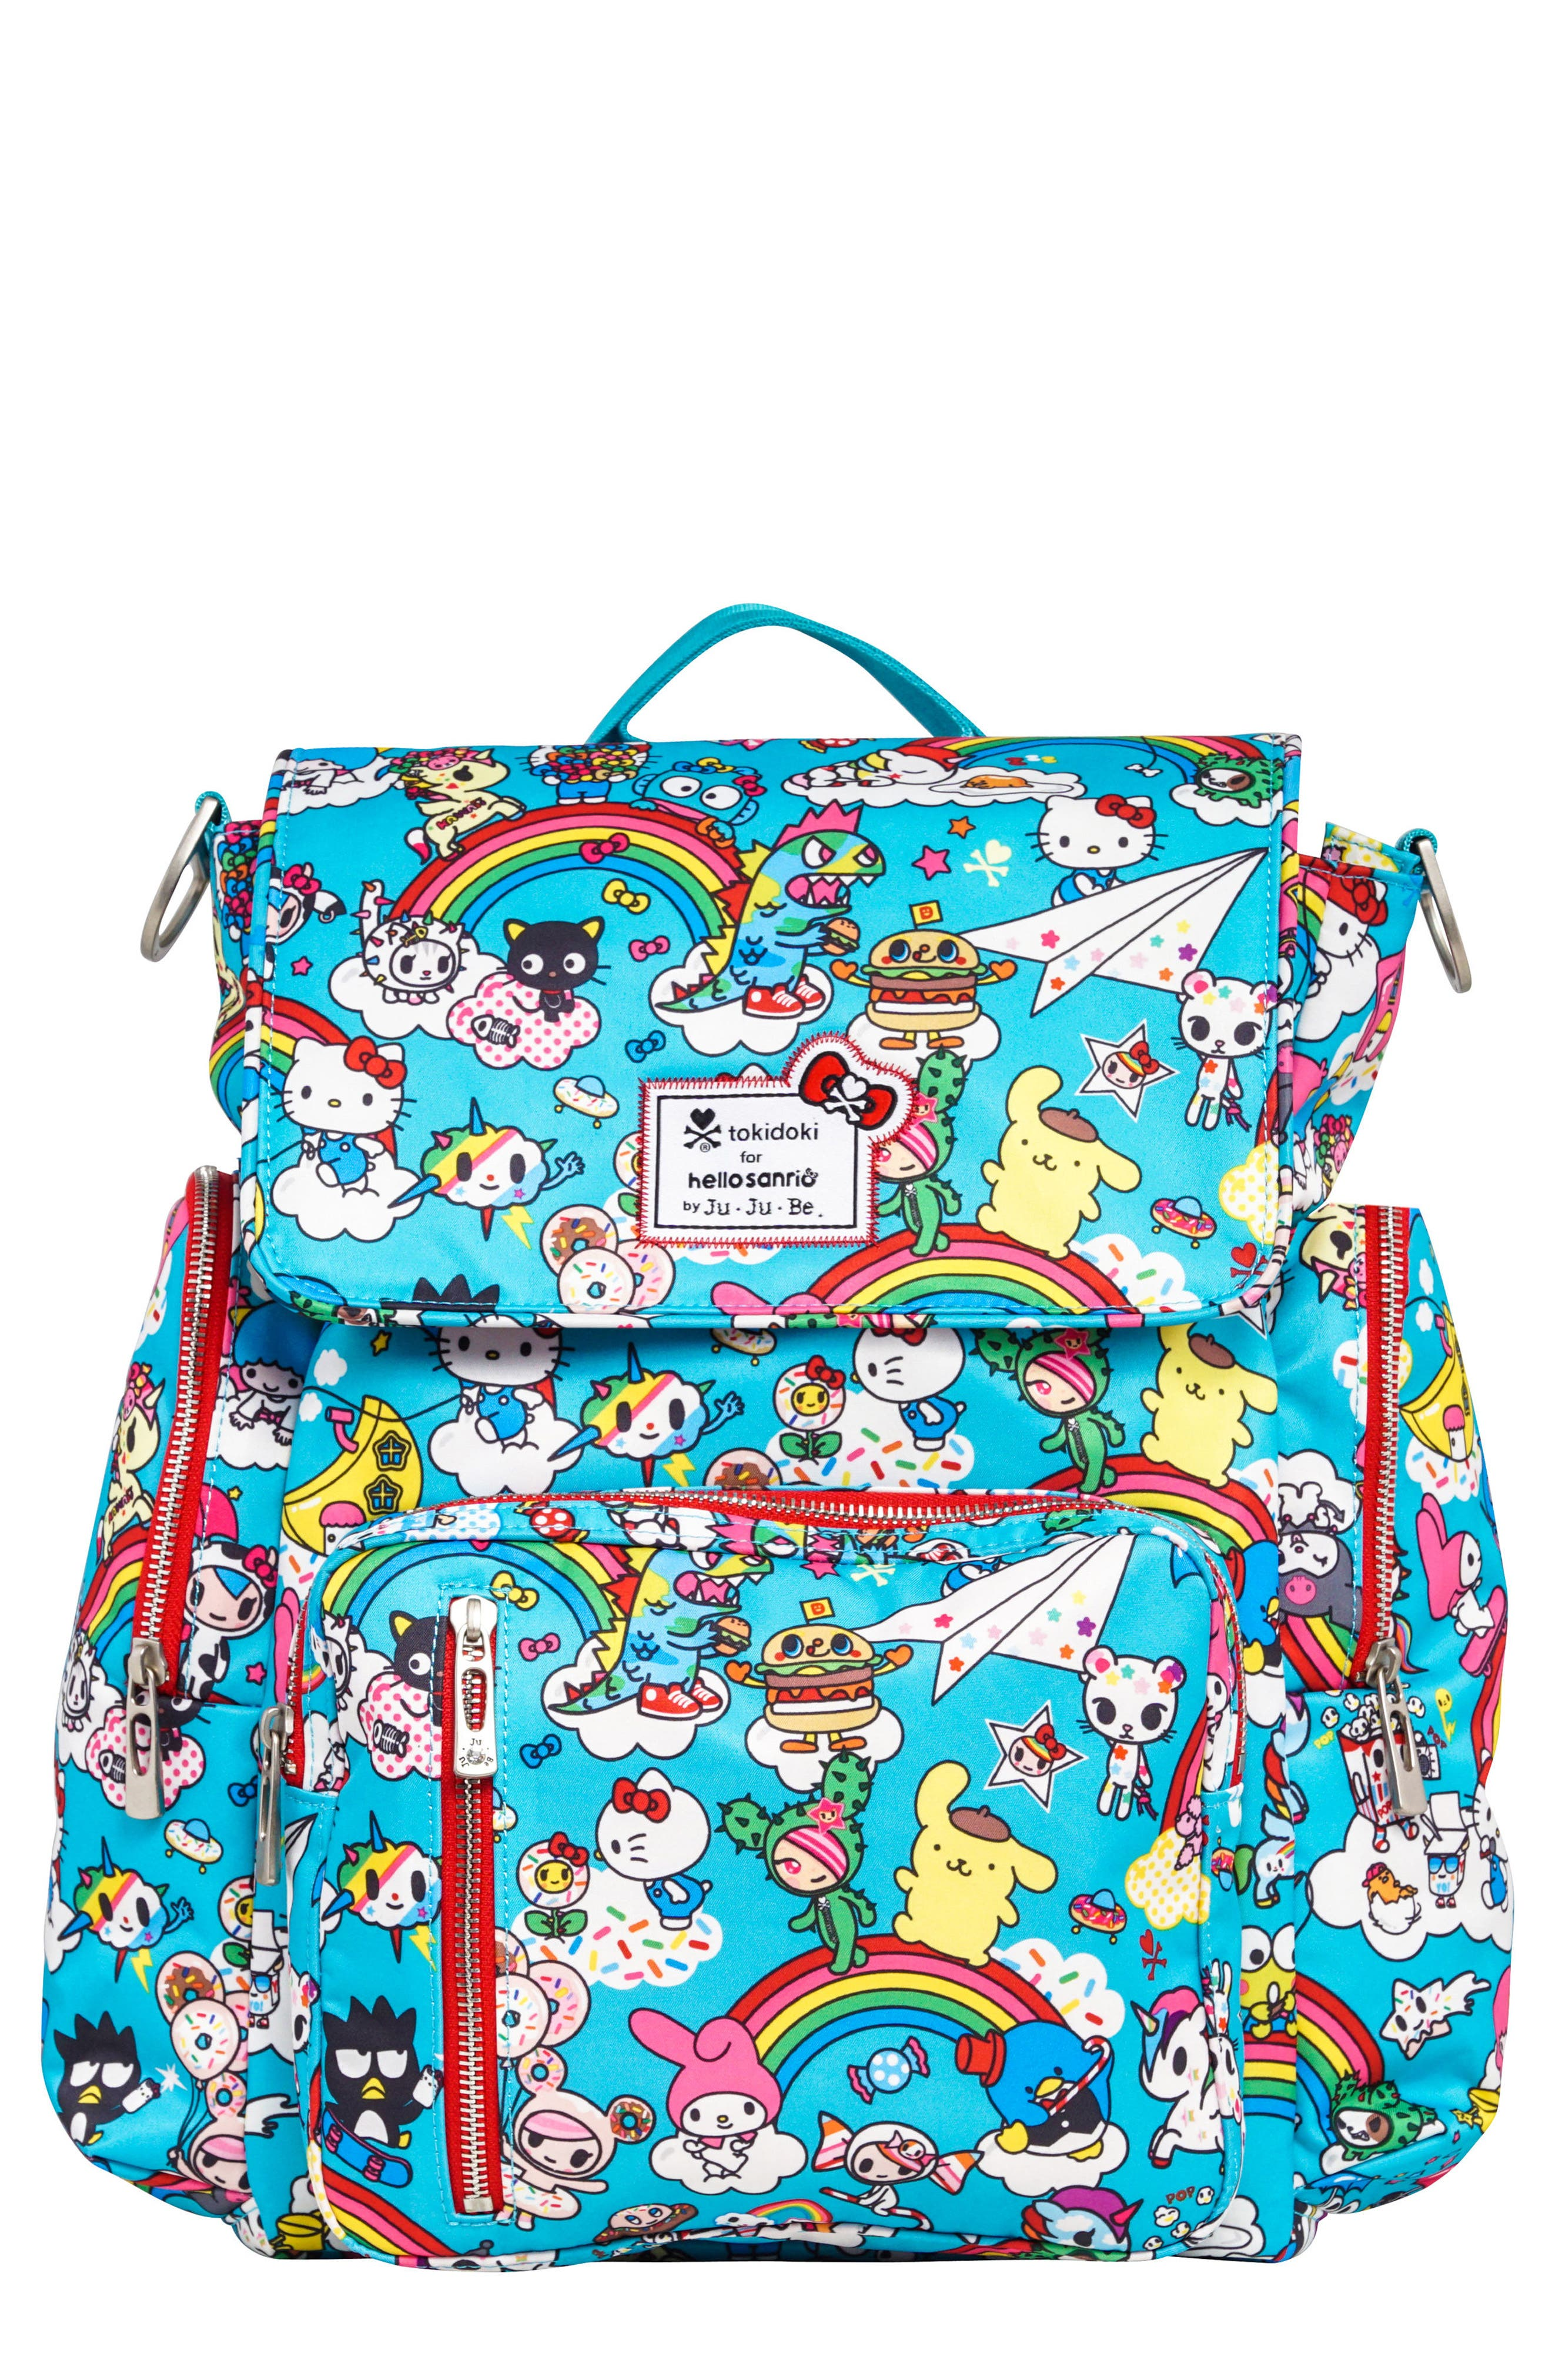 x tokidoki for Hello Sanrio Rainbow Dreams Sporty Diaper Backpack,                             Main thumbnail 1, color,                             433